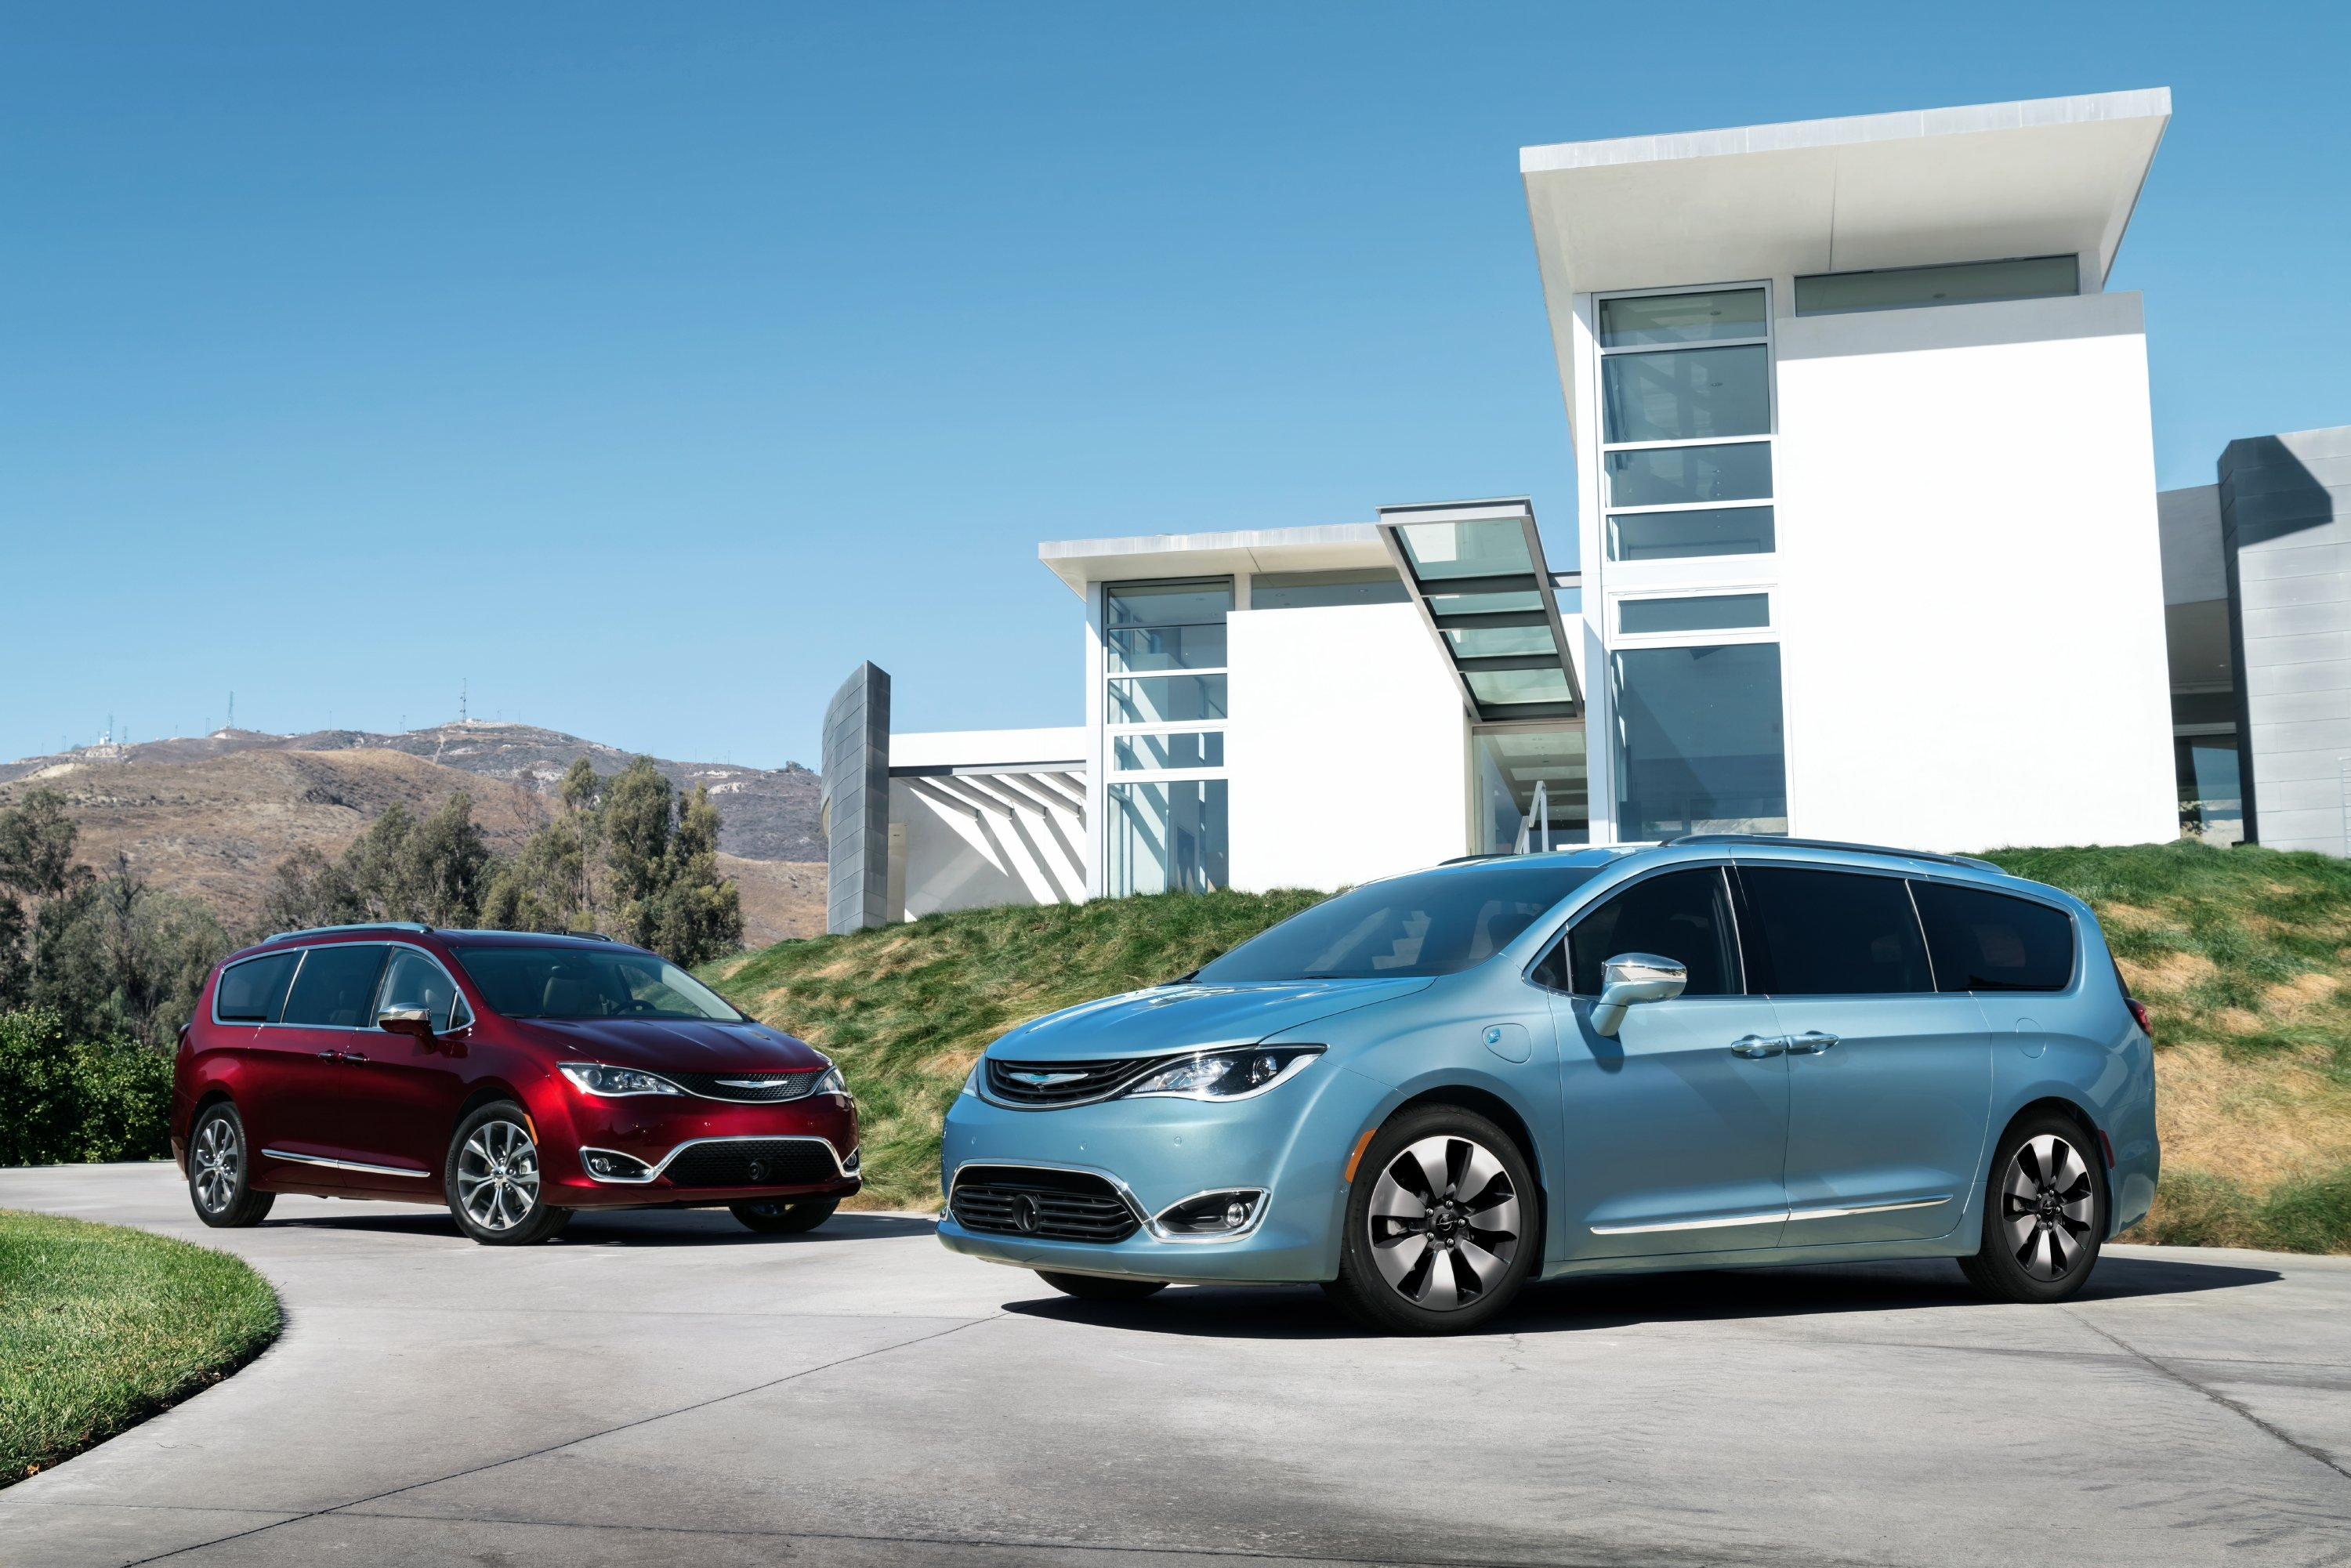 Chrysler just revived a brand that bombed the last time around, and it killed …